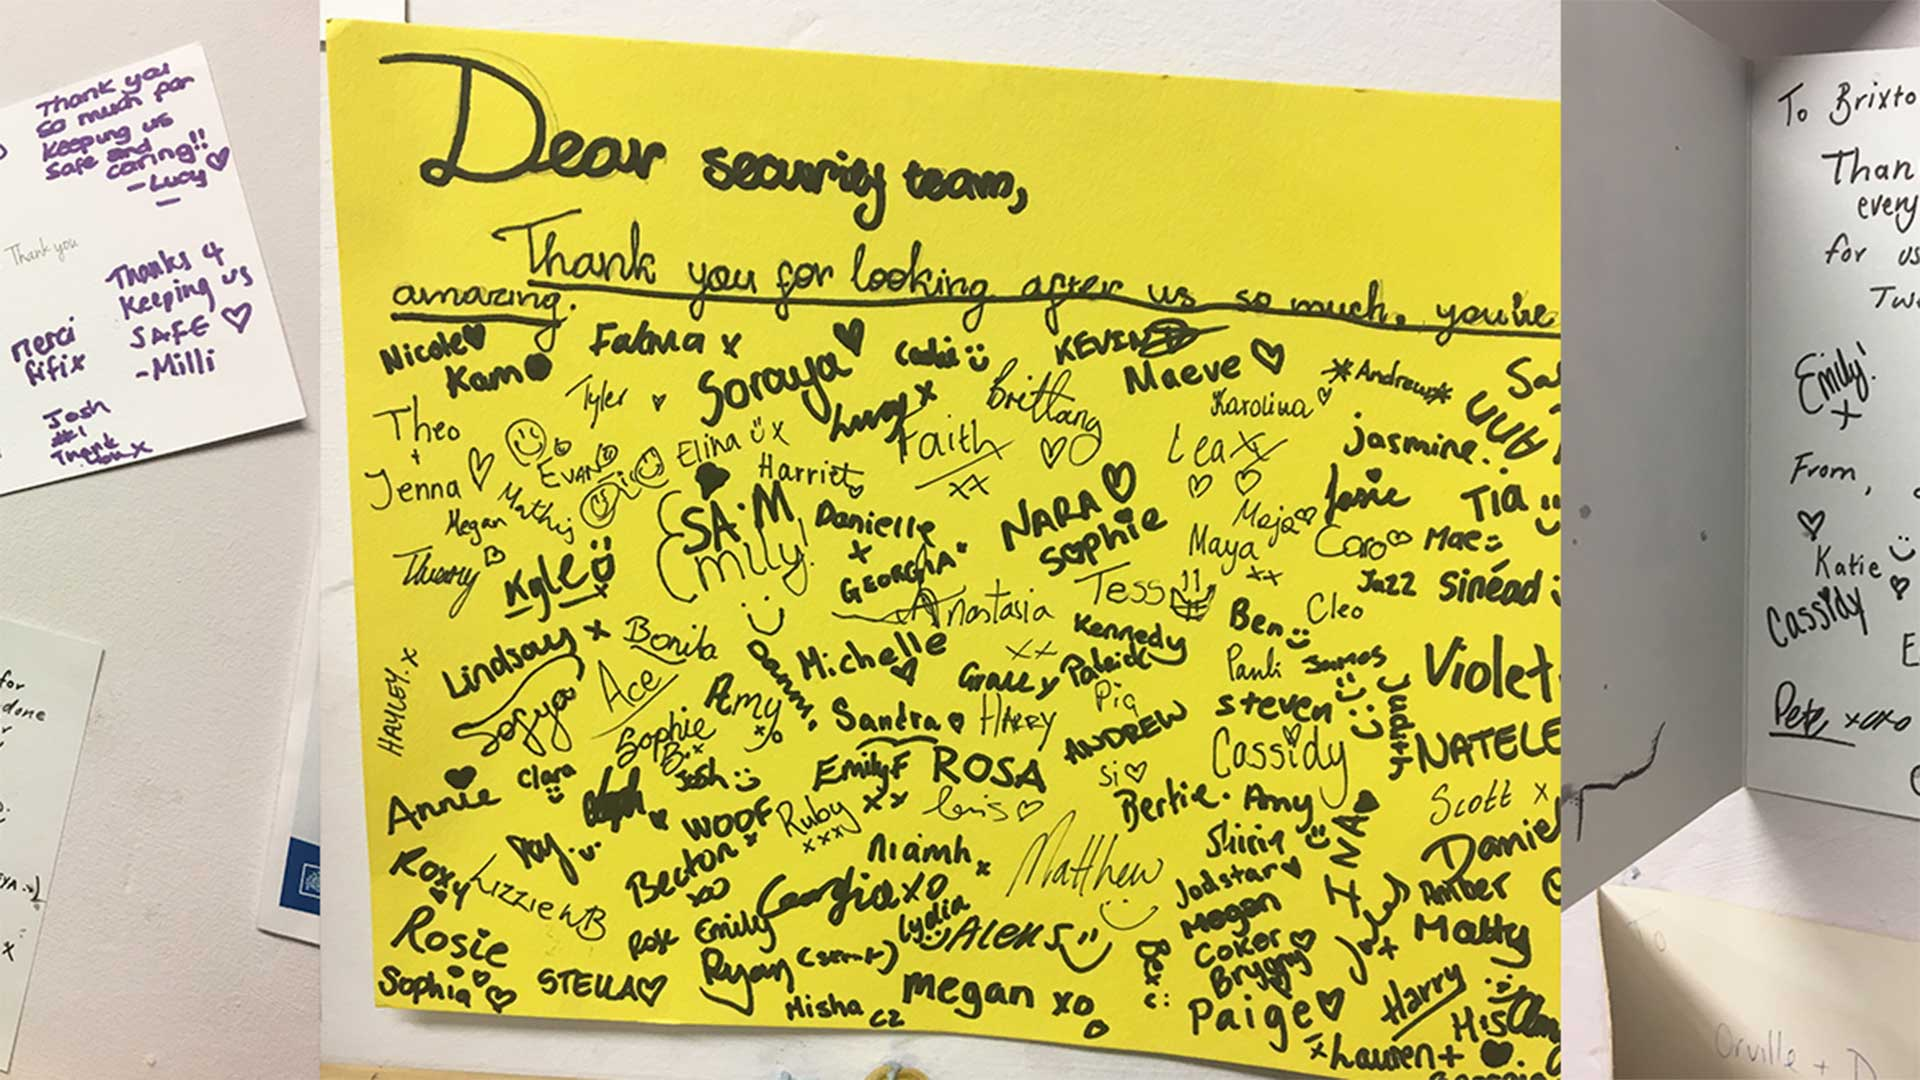 photo of thank-you card